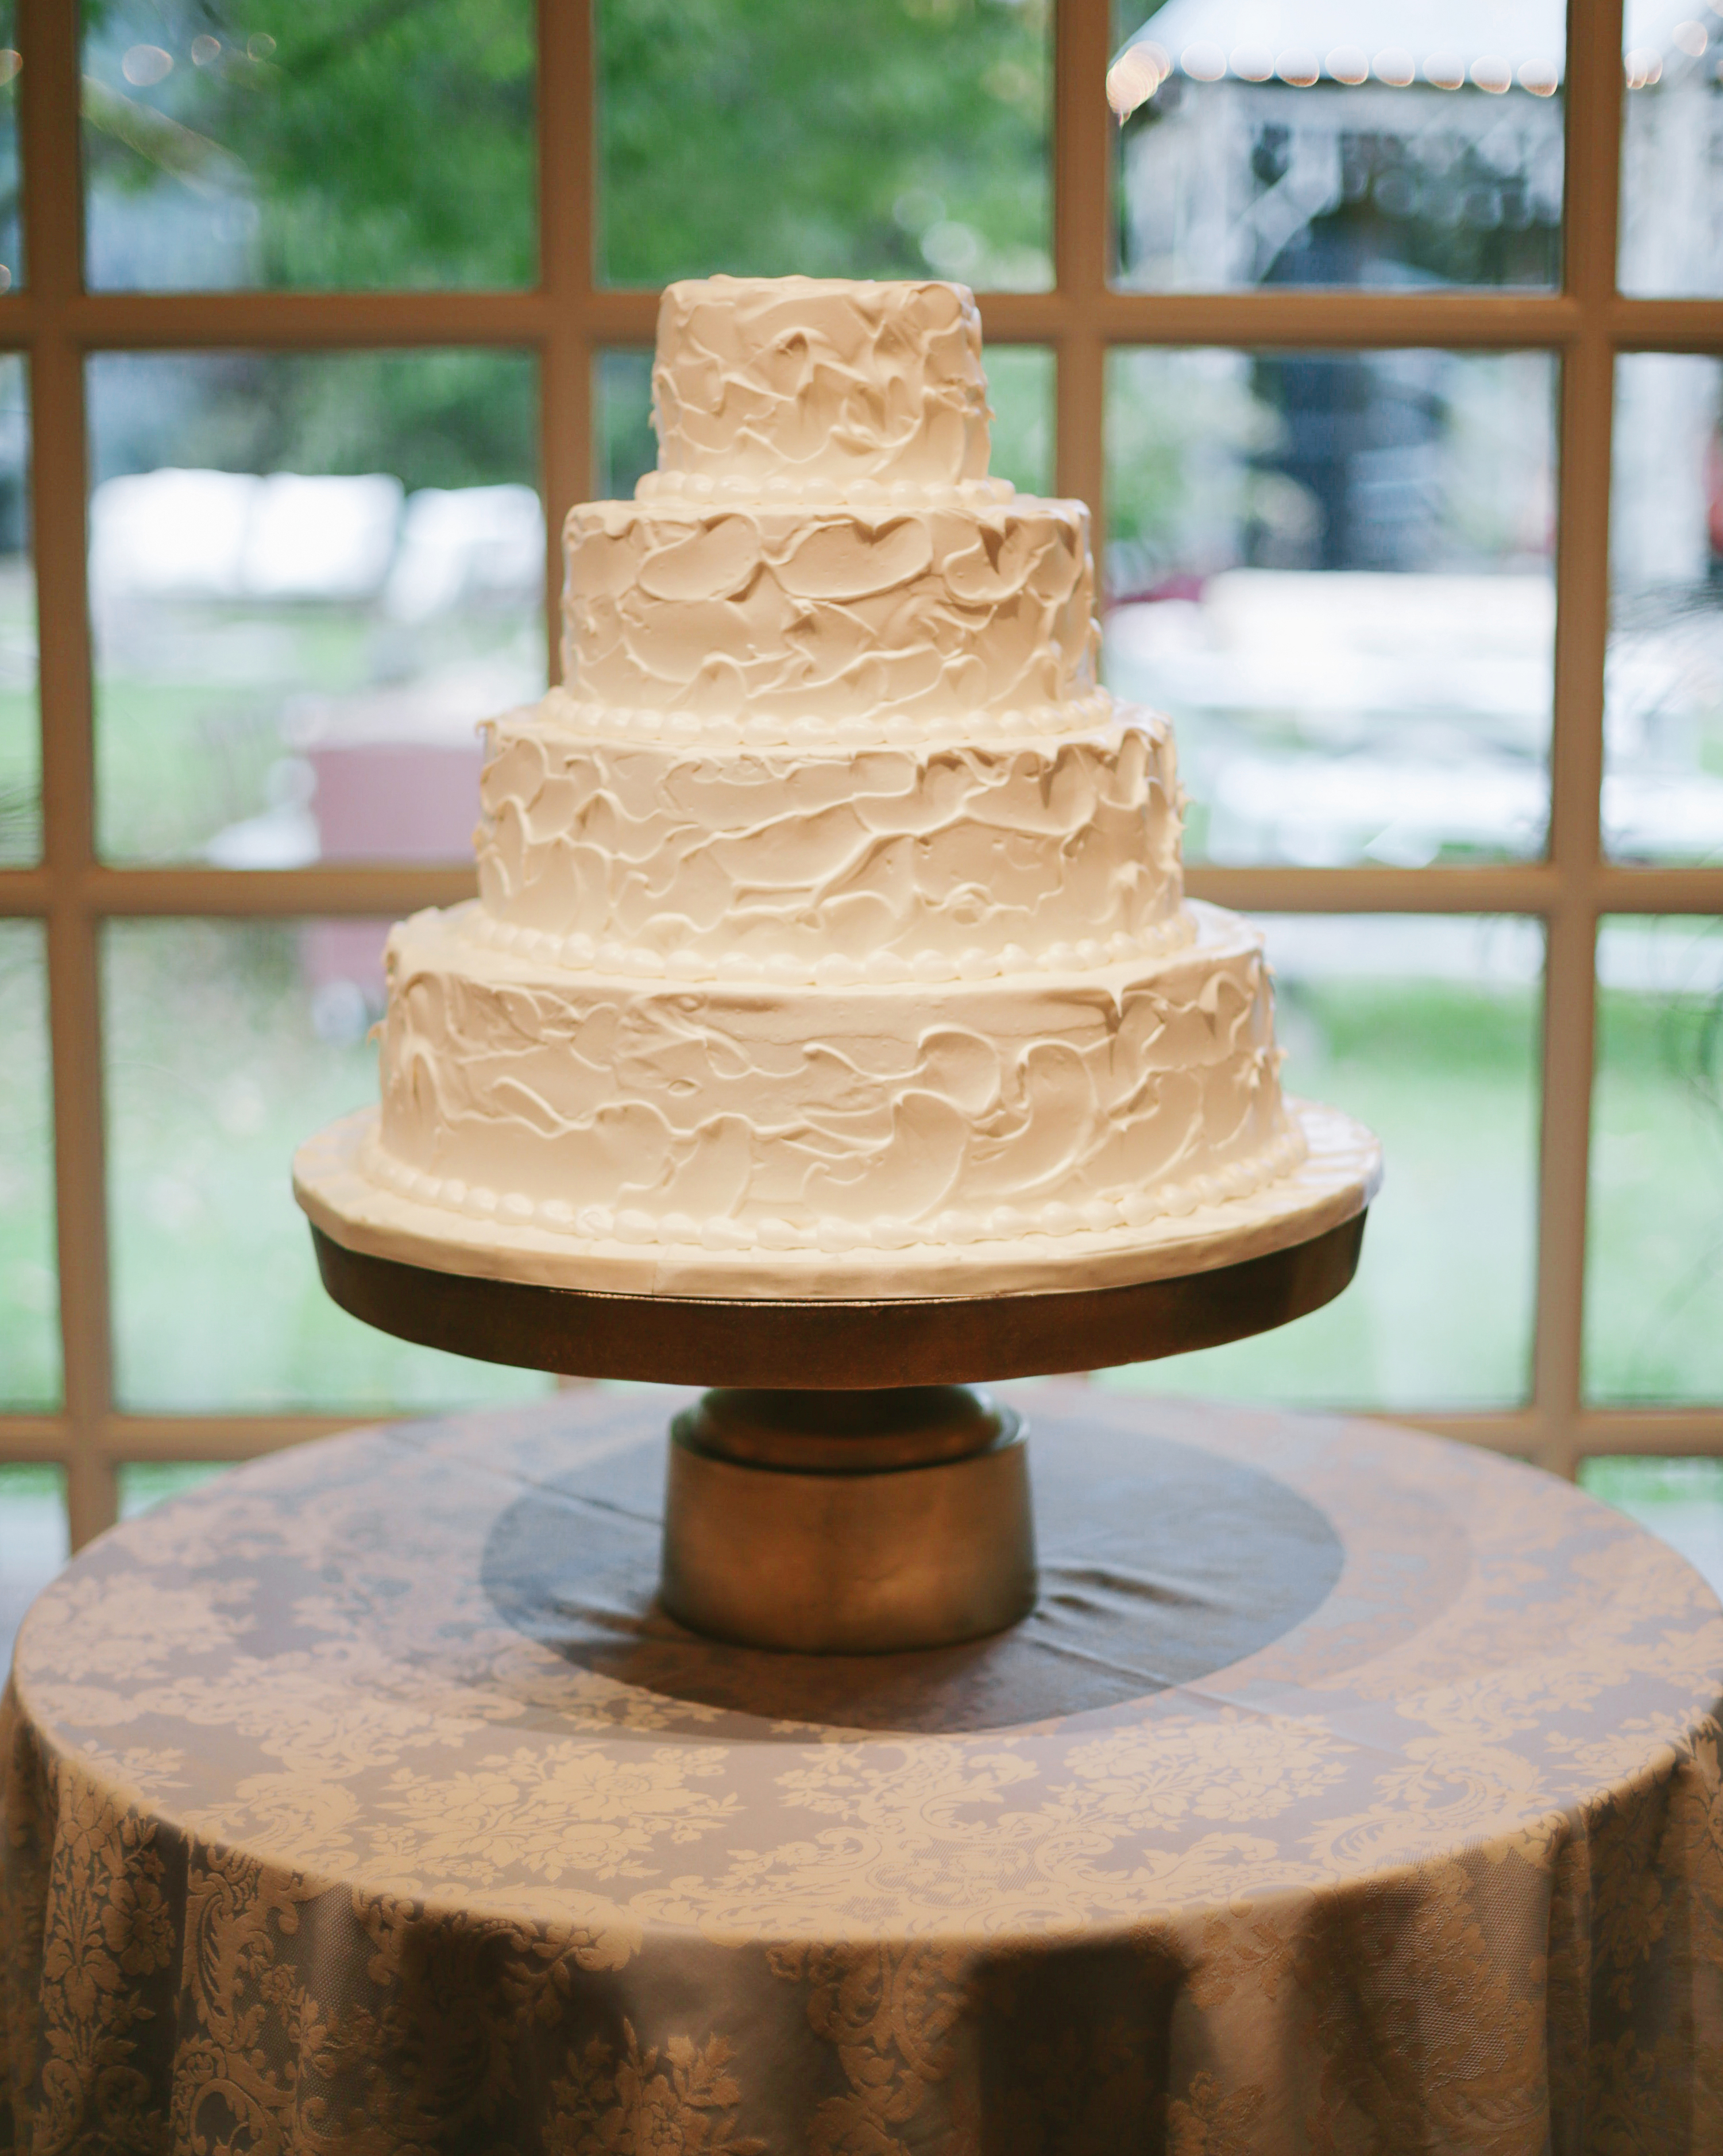 destiny-taylor-wedding-cake-334-s112347-1115.jpg